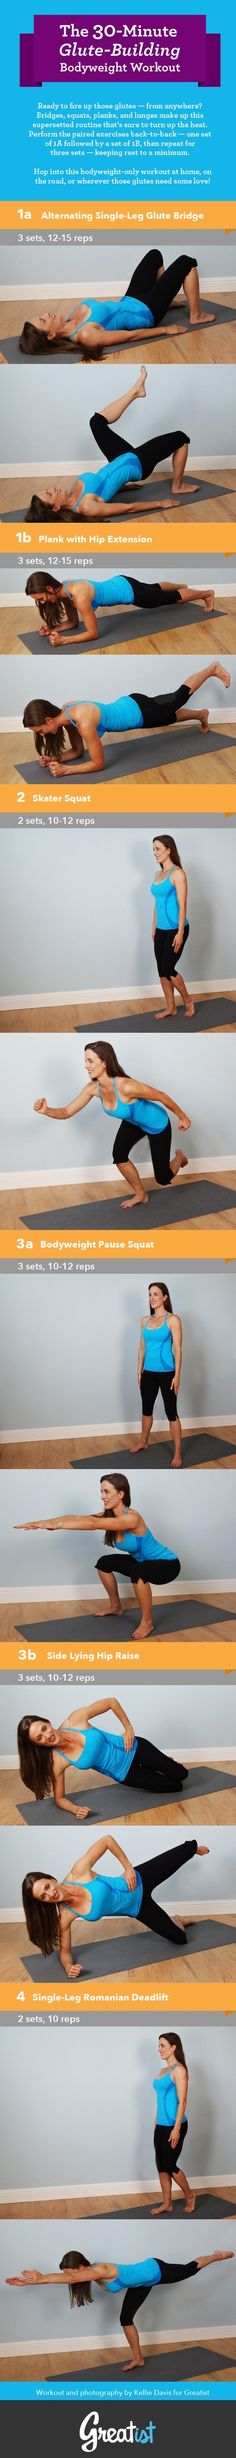 The 30-Minute Glute-Building Bodyweight #Workout      #fitness #exercise